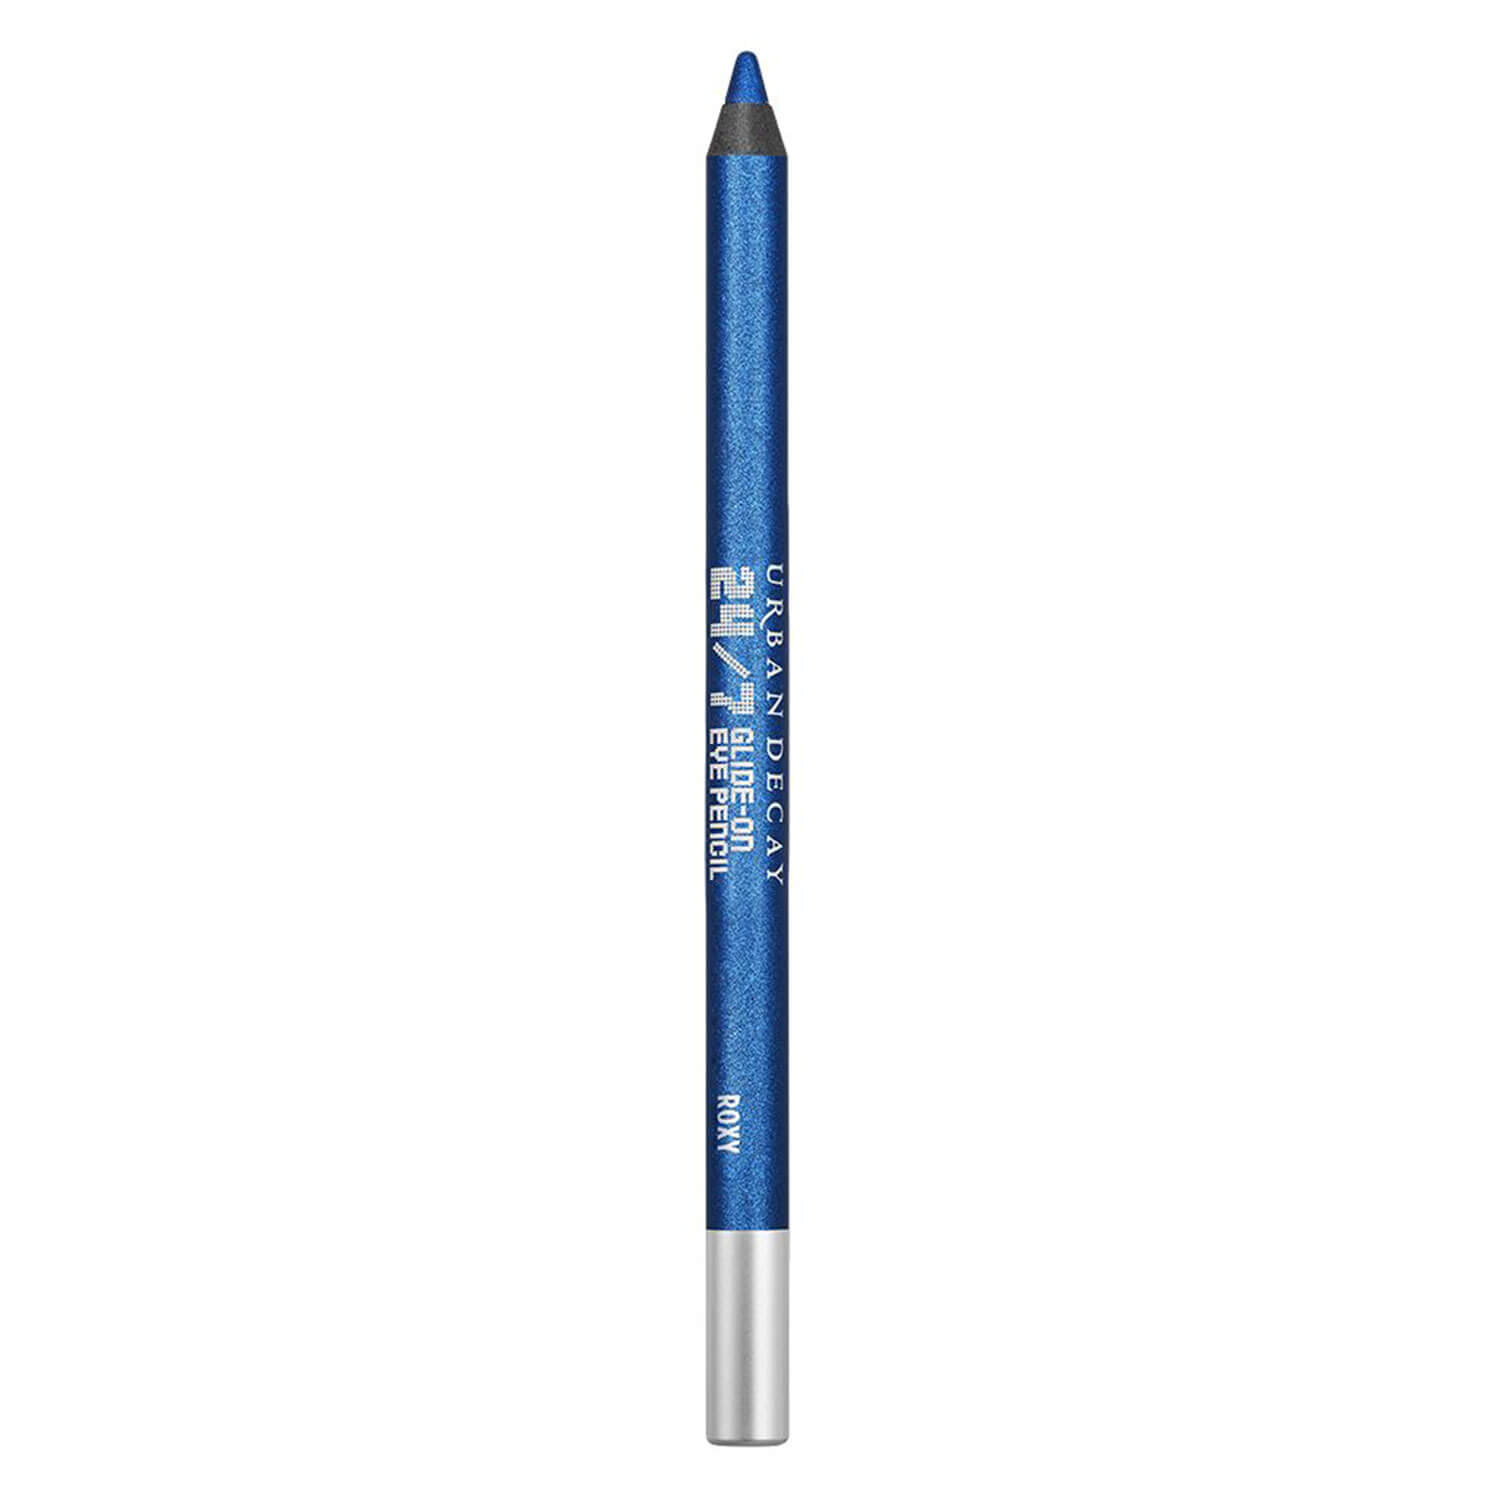 24/7 Glide-On - Eye Pencil Roxy - 1.2g